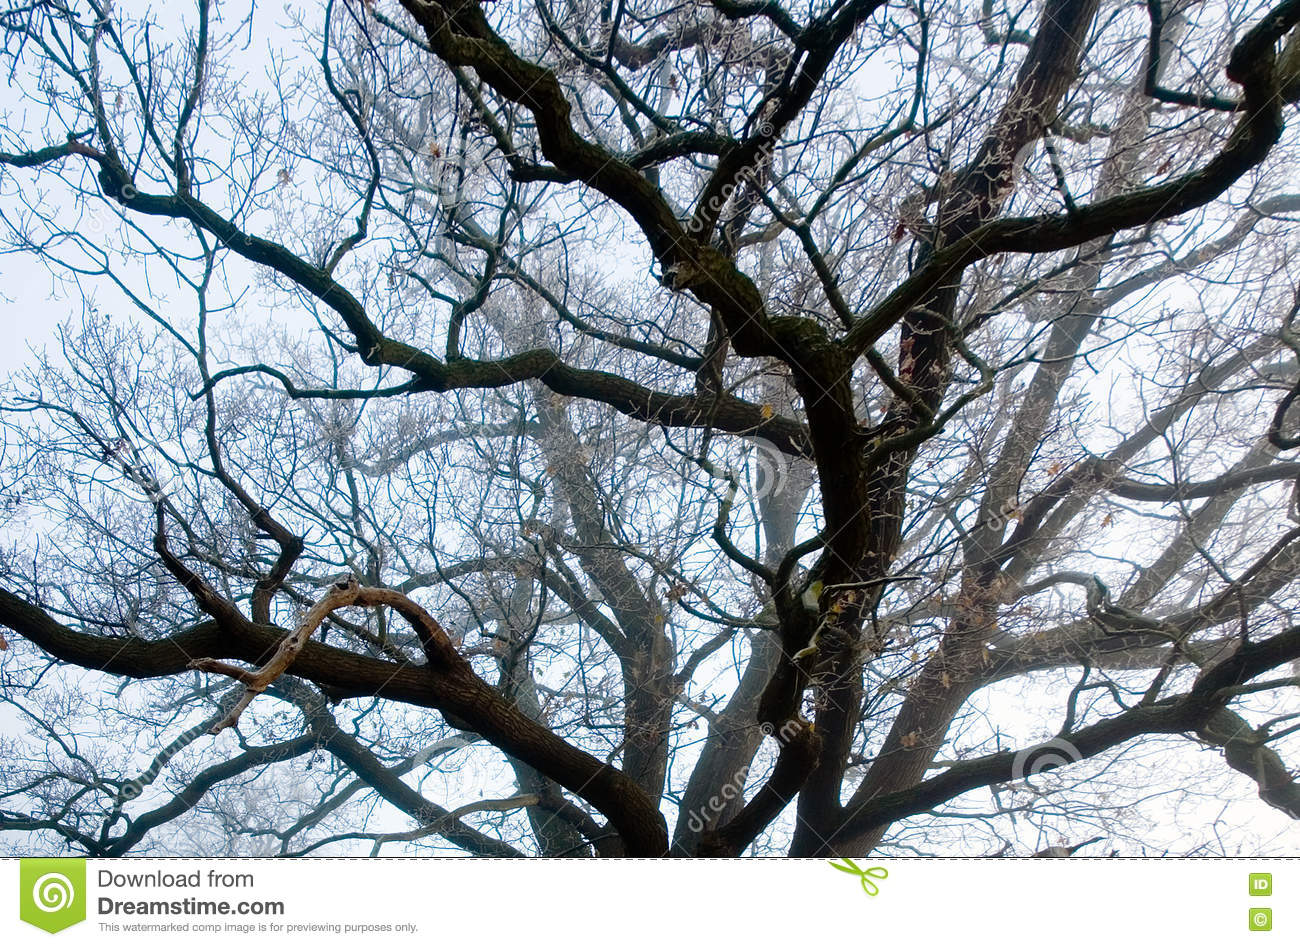 The Veins of Tree Branches